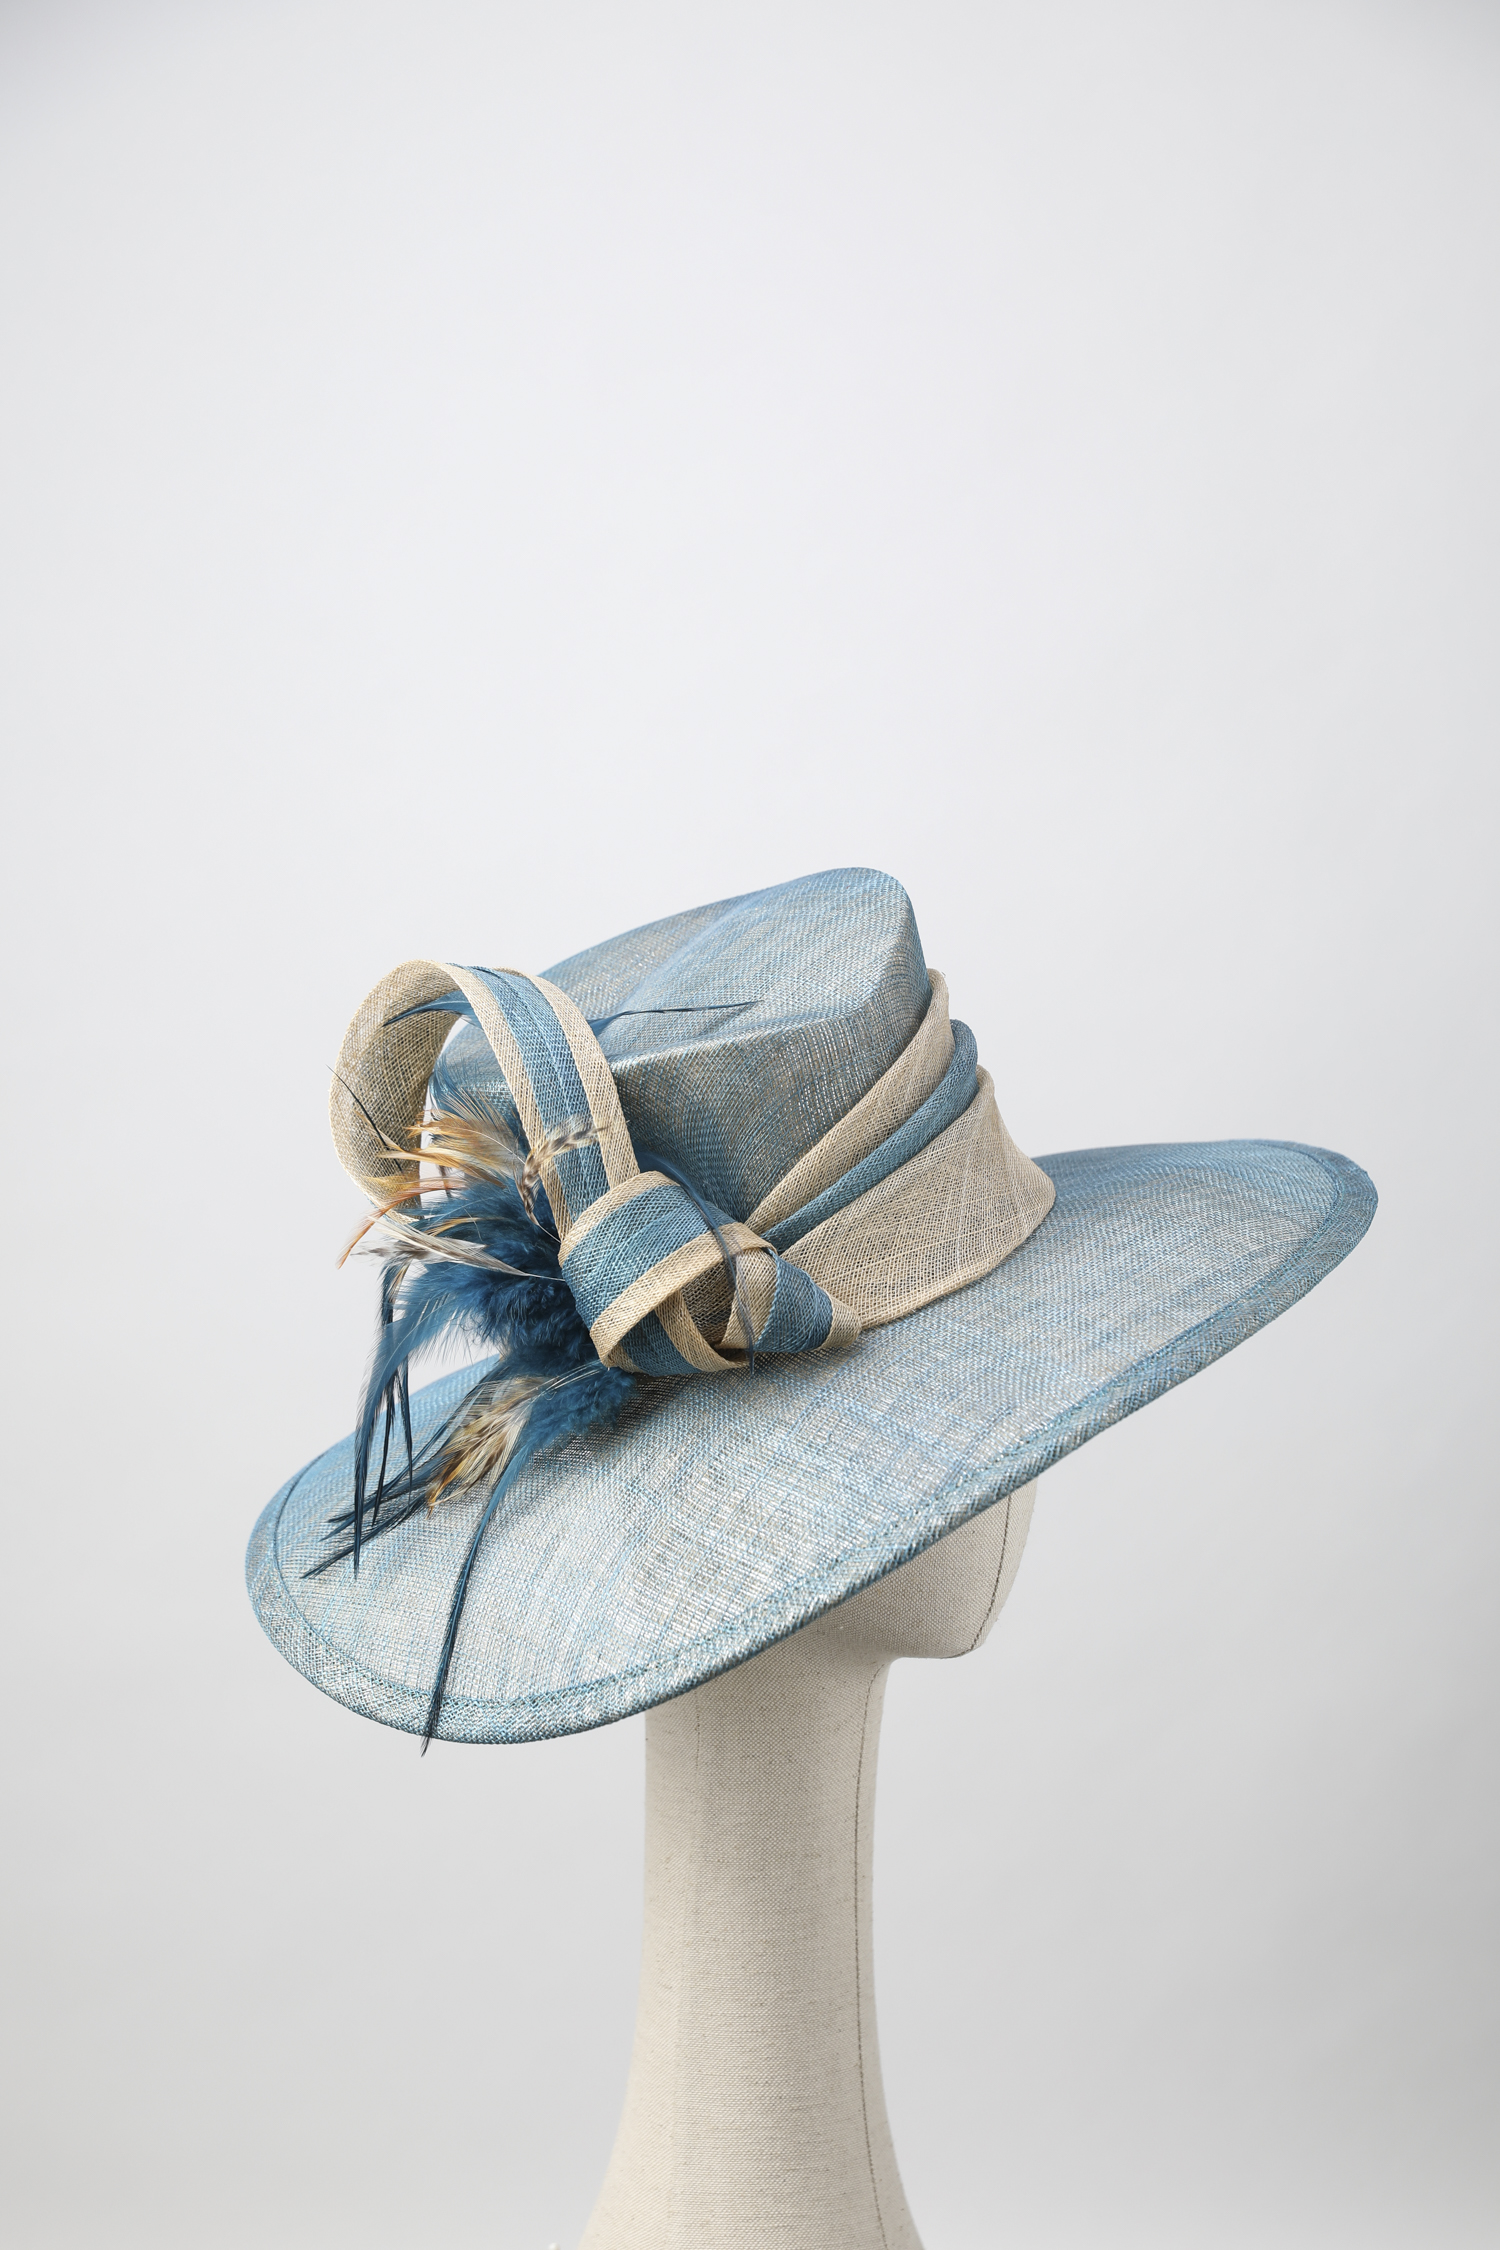 Copy of Jaycow Millinery by Jay Cheng Sample Stock 2019 (7).jpg